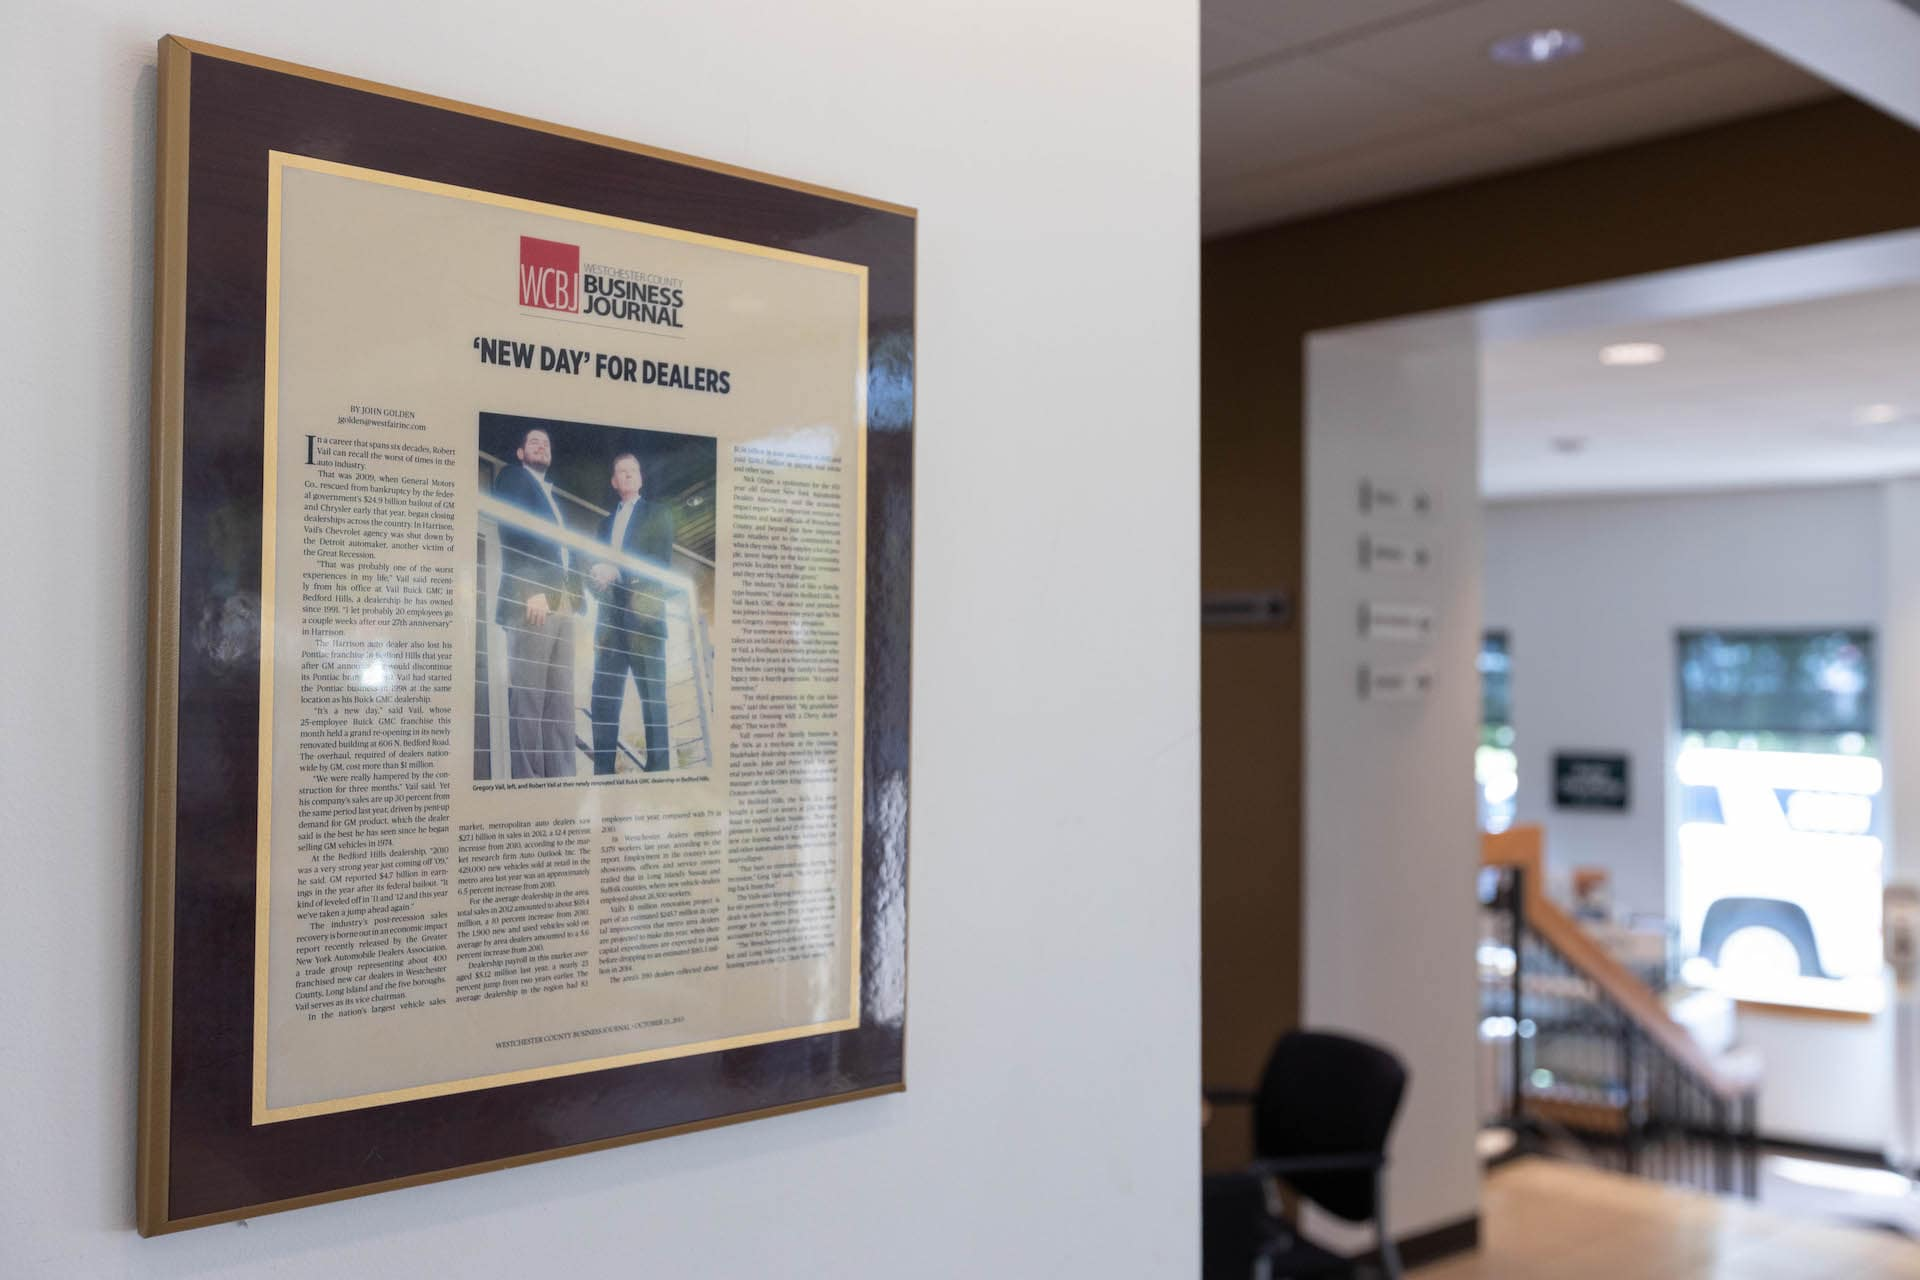 A newspaper hung in the offices.